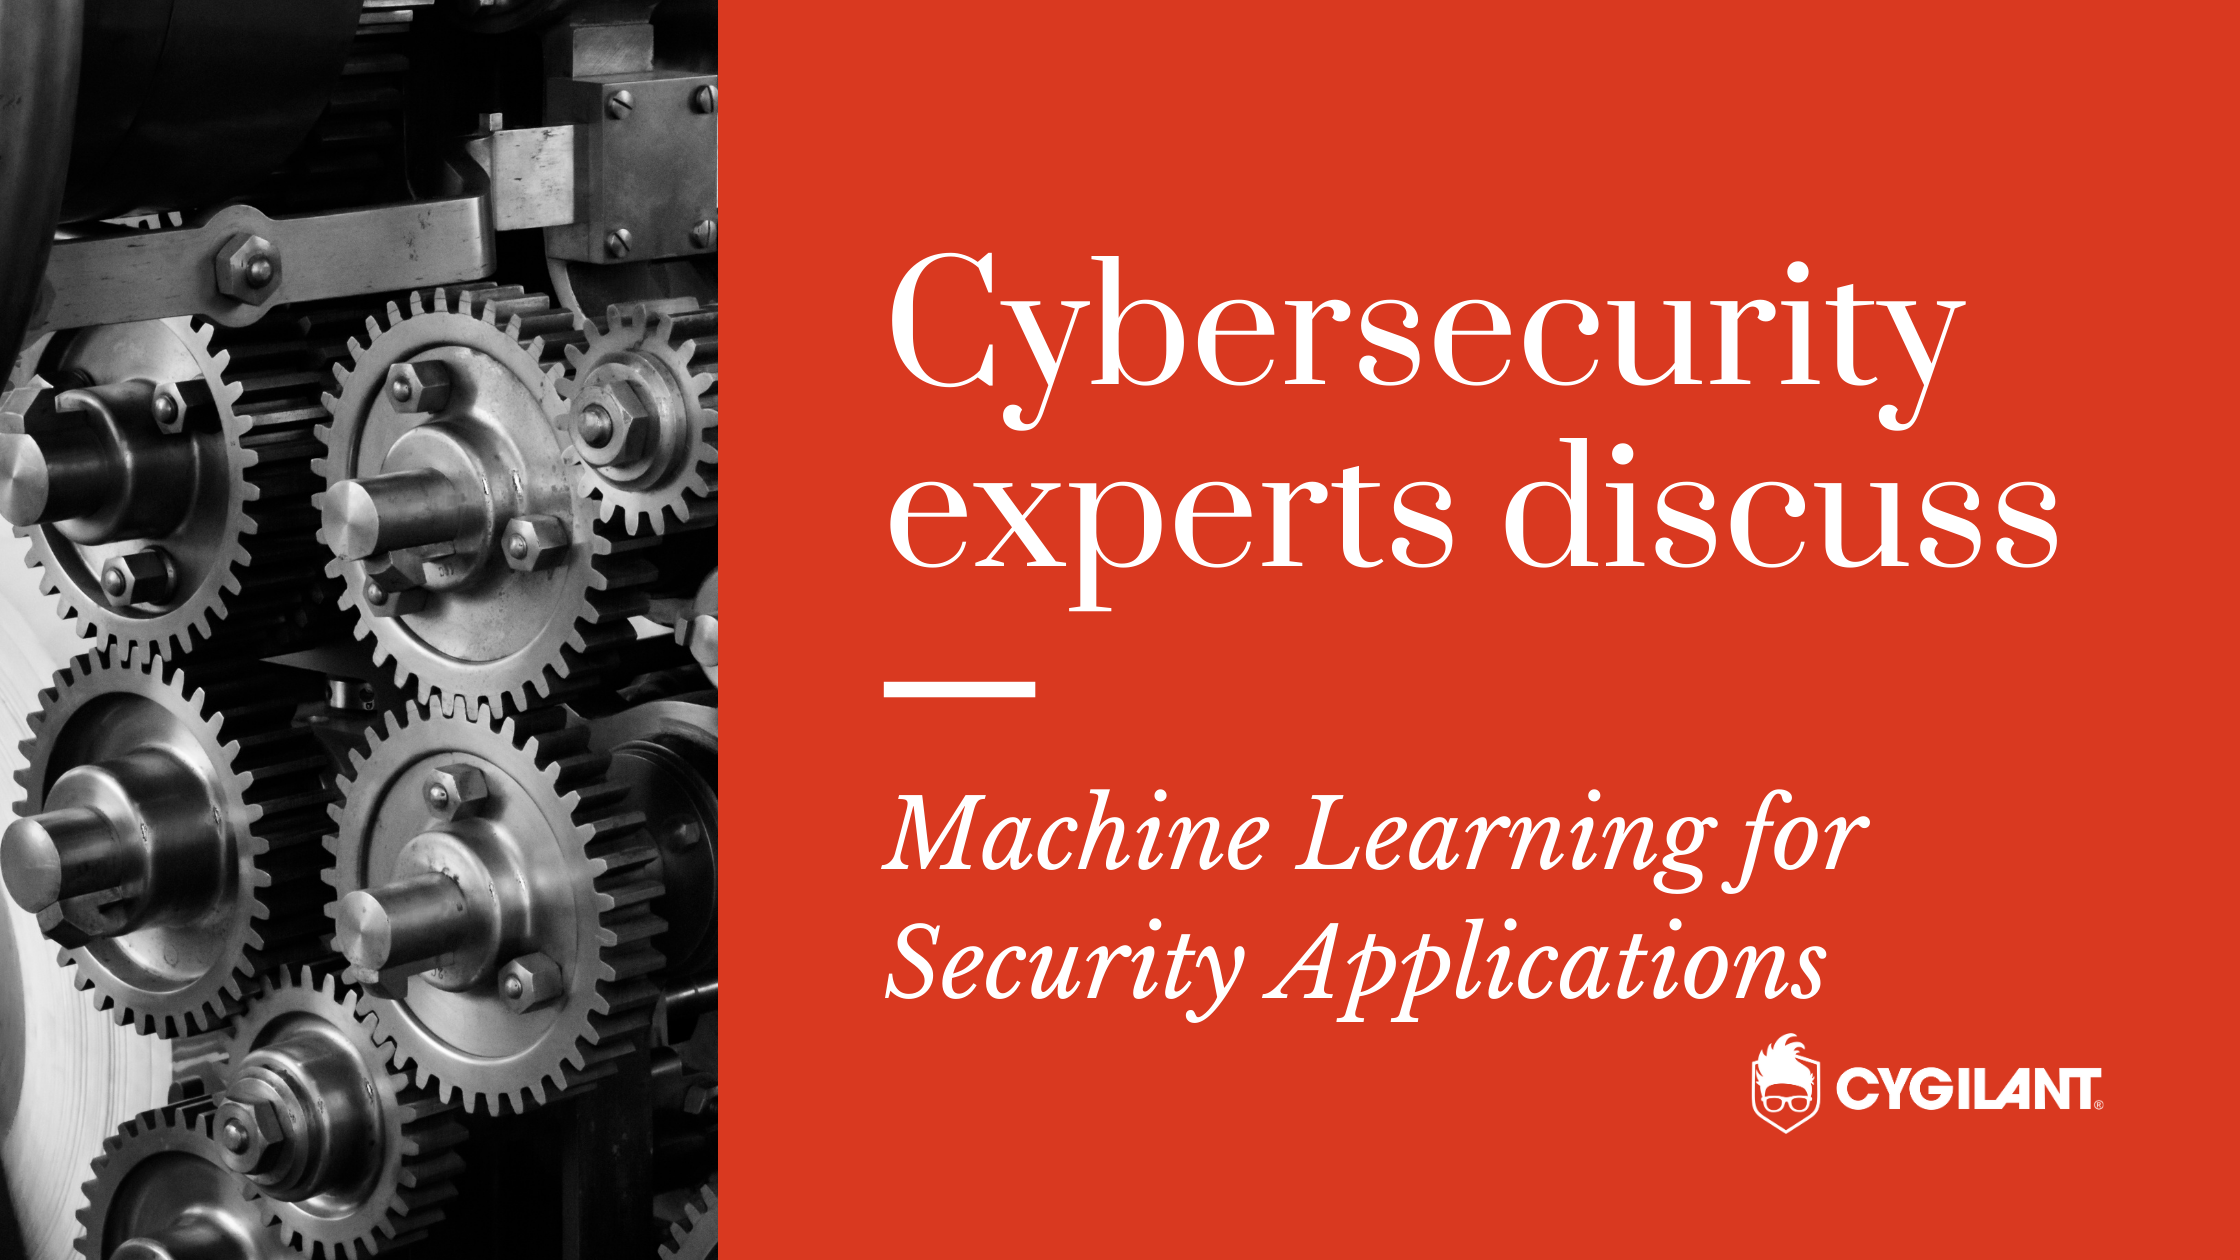 Cybersecurity Experts Discuss: Machine Learning for Security Applications